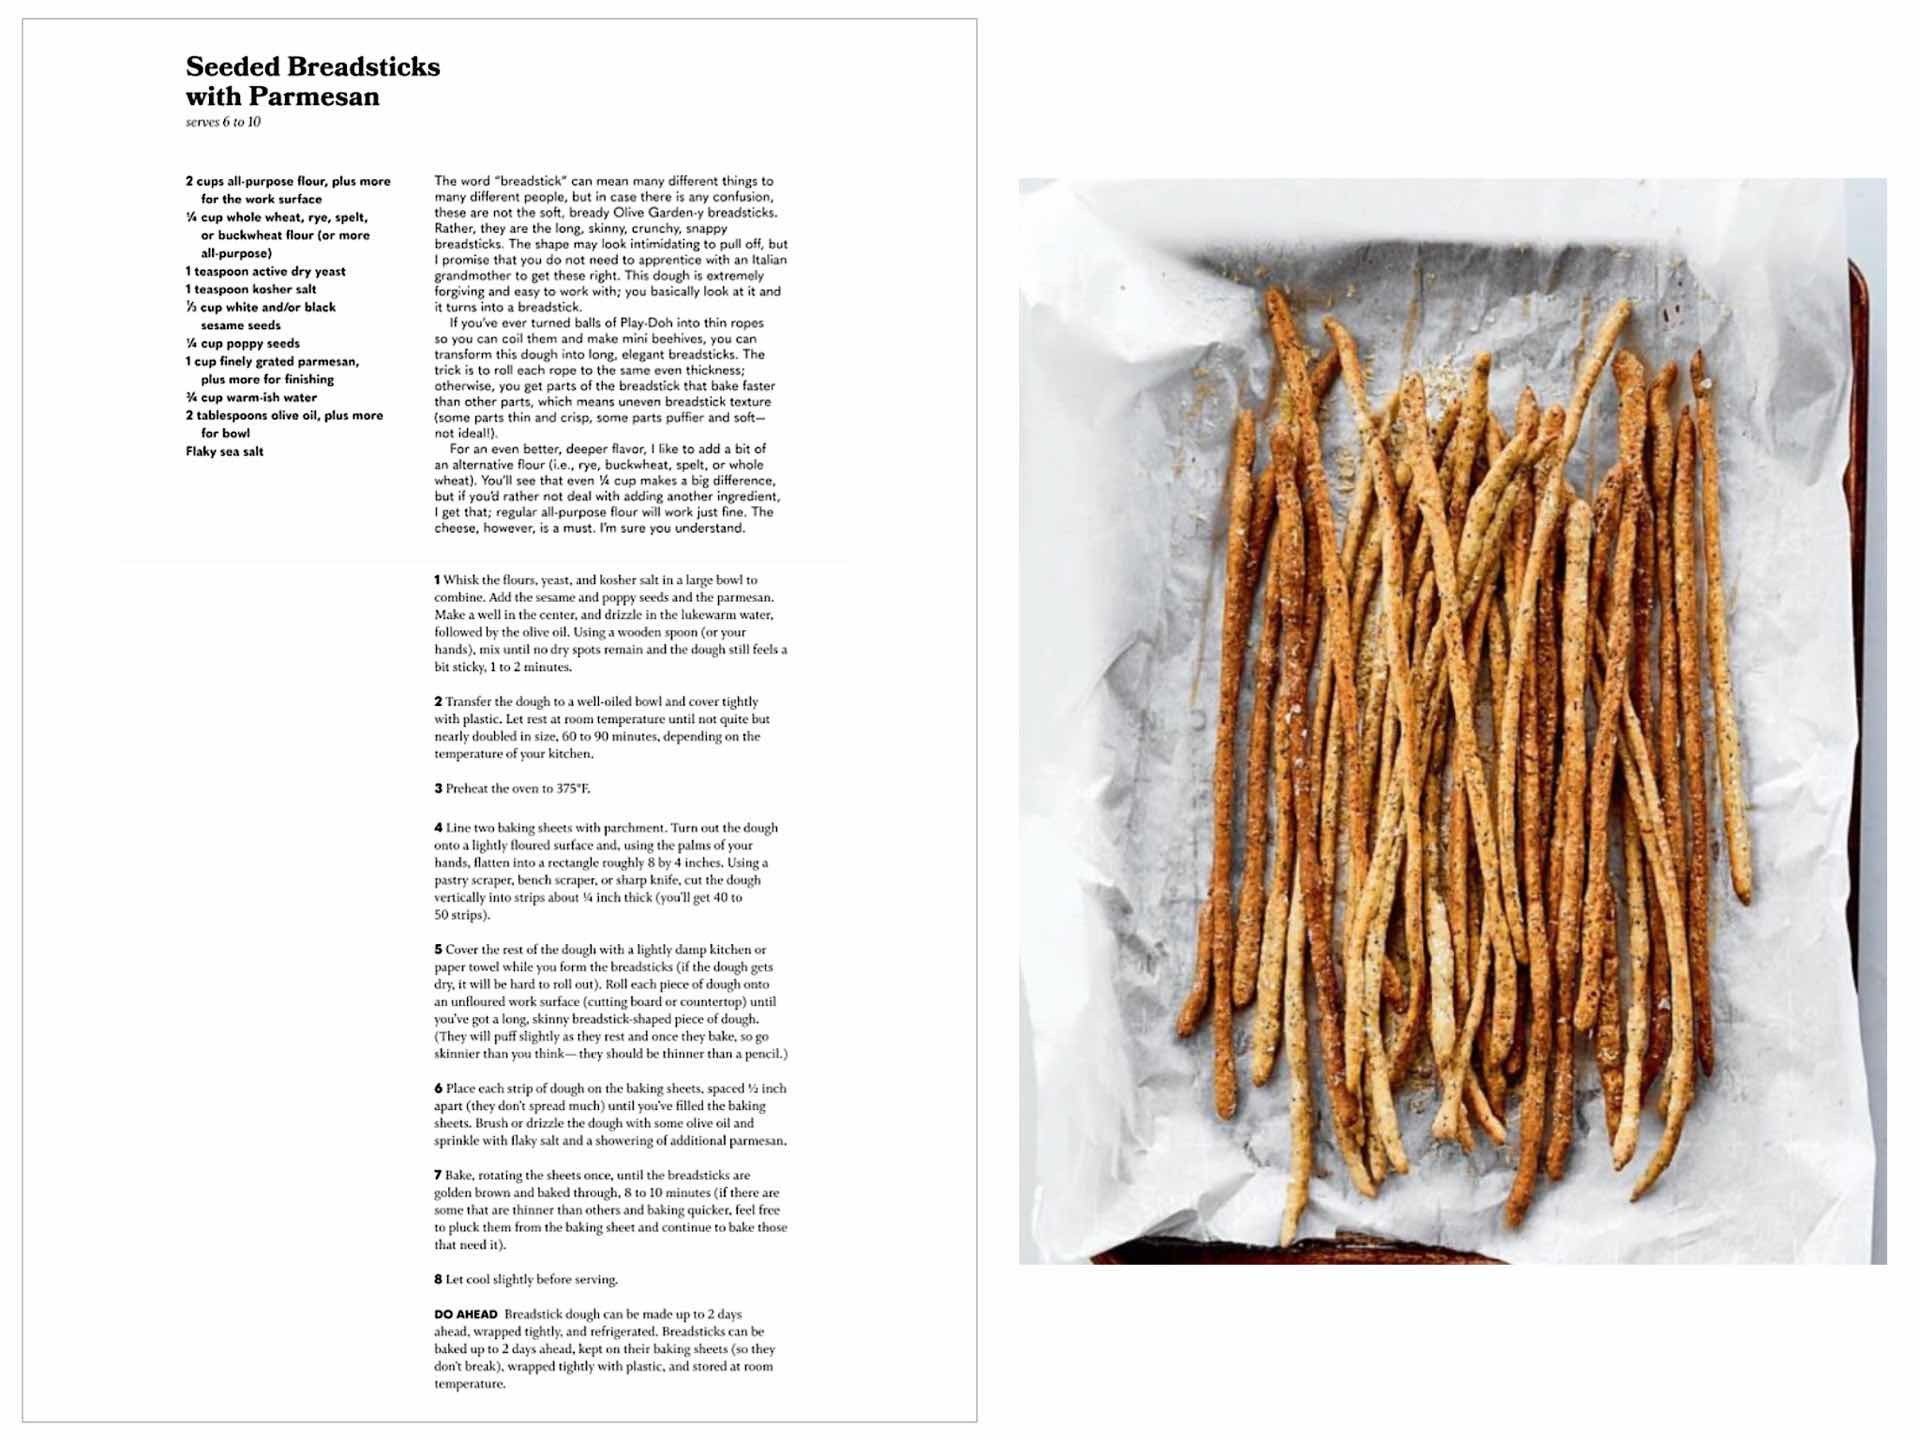 nothing-fancy-cookbook-by-alison-roman-seeded-breadsticks-with-parmesan